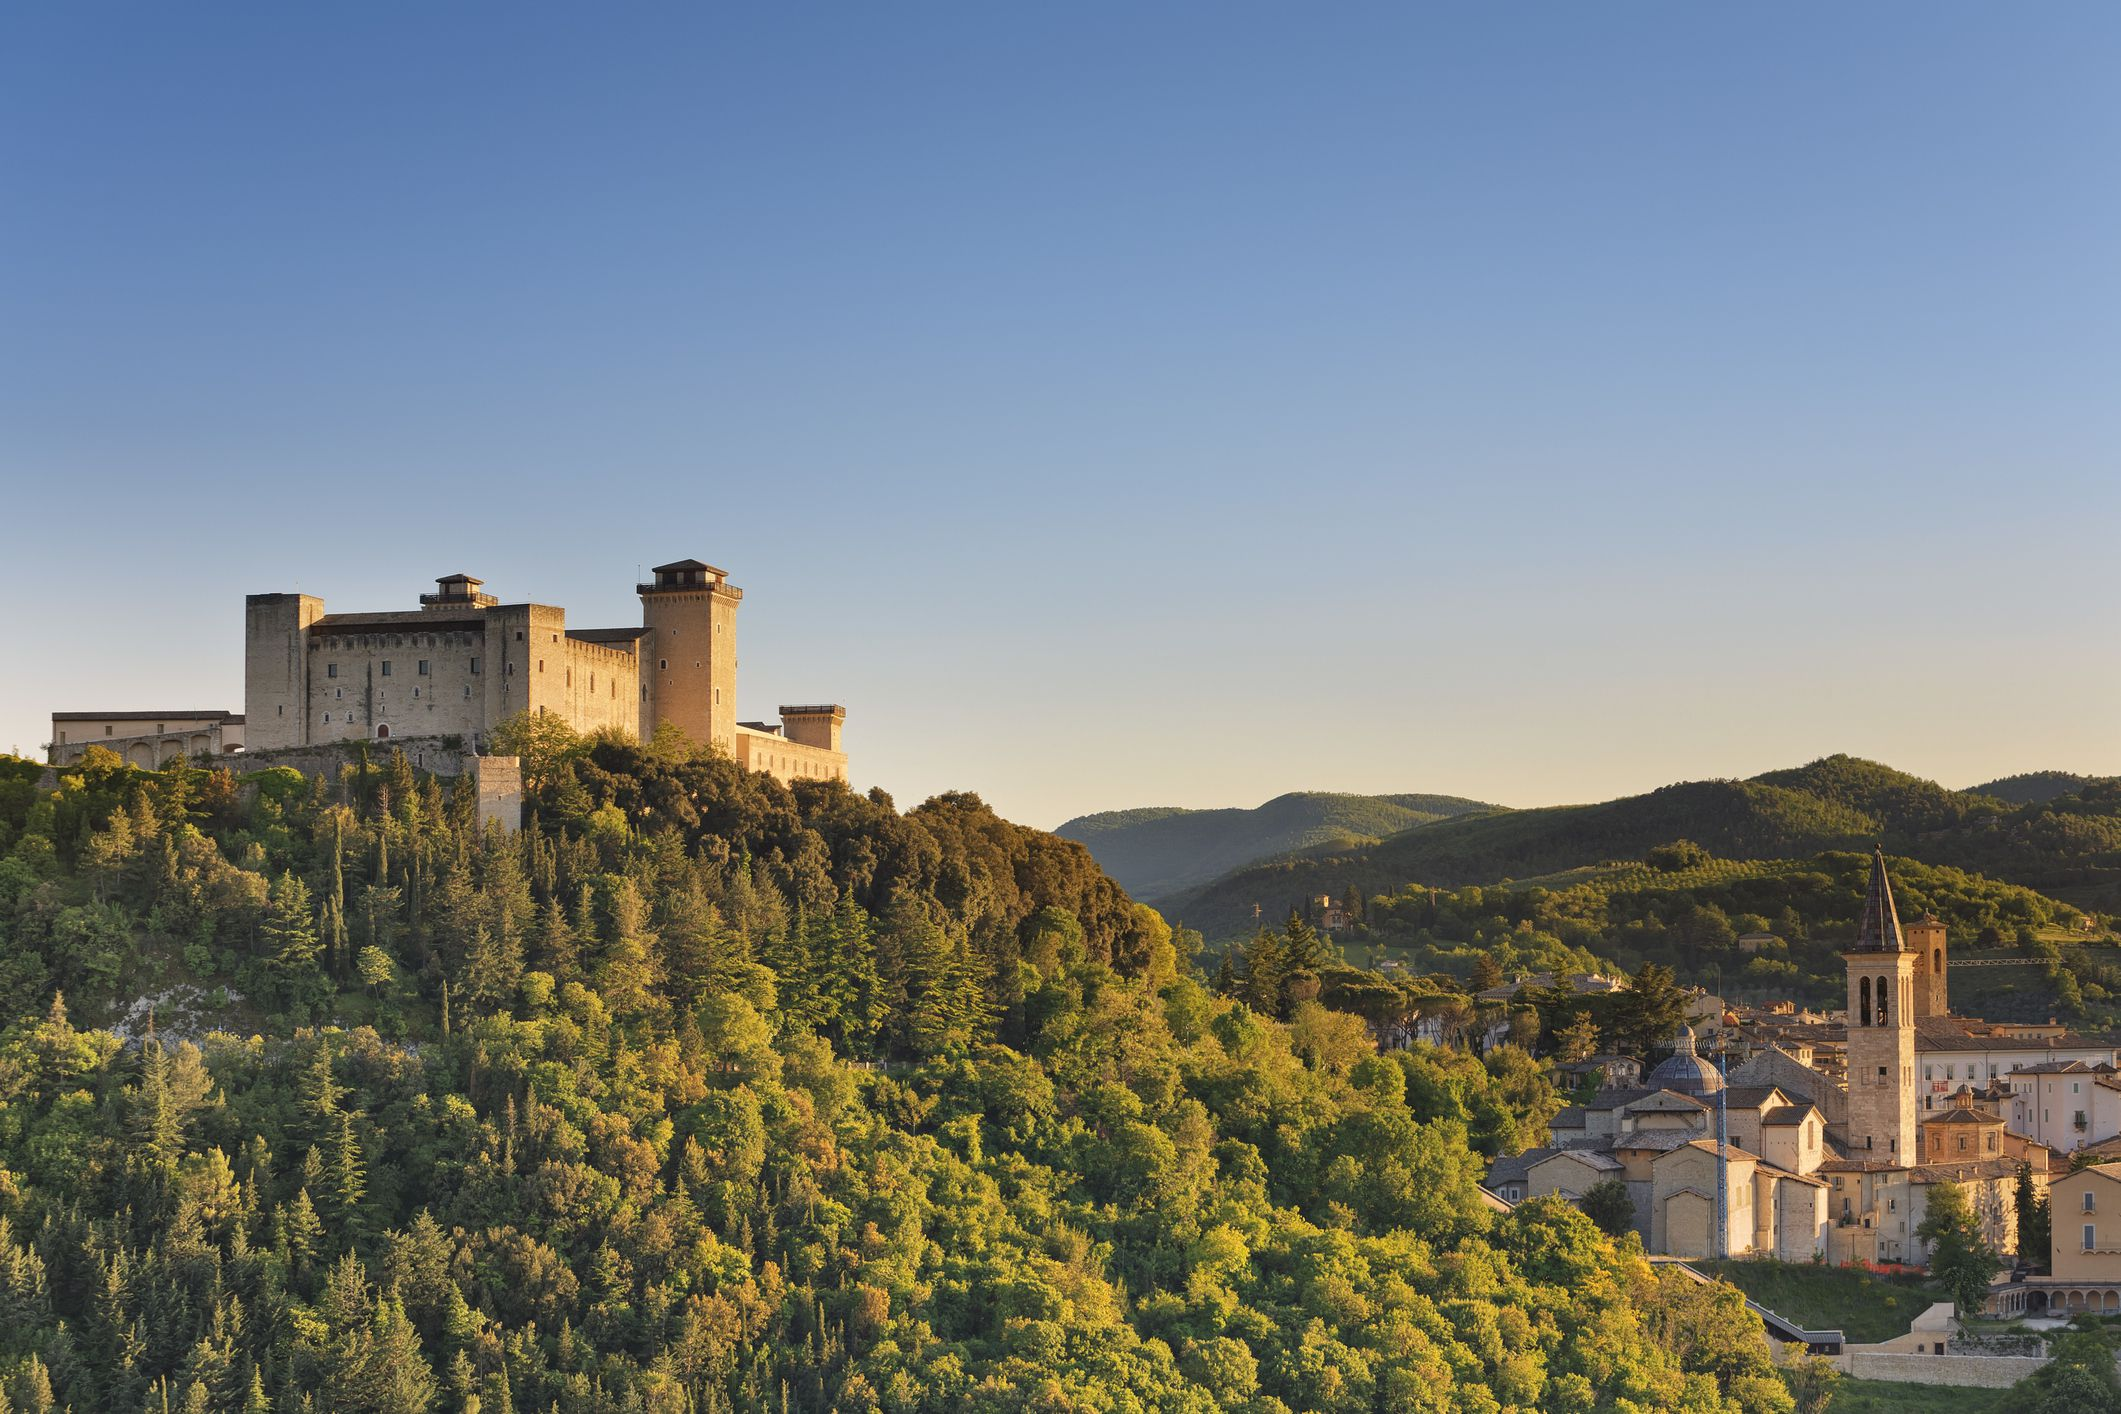 Where To Visit Castles In Italy